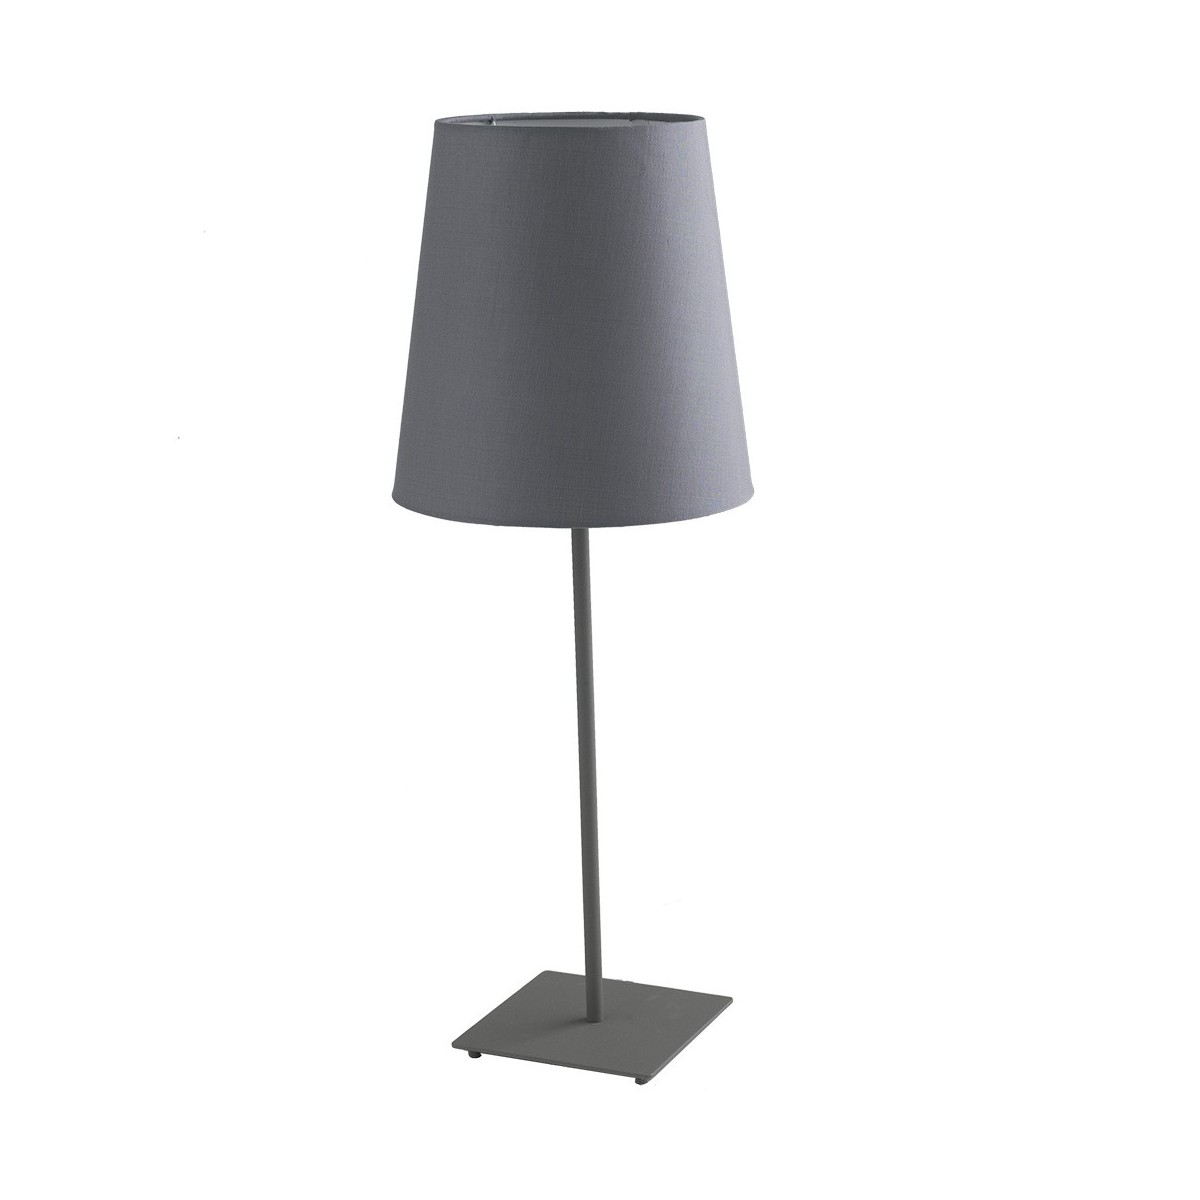 I ELVIS L GR 8031440363747 Fan Europe Lighting Lume grigio minimal ELVIS